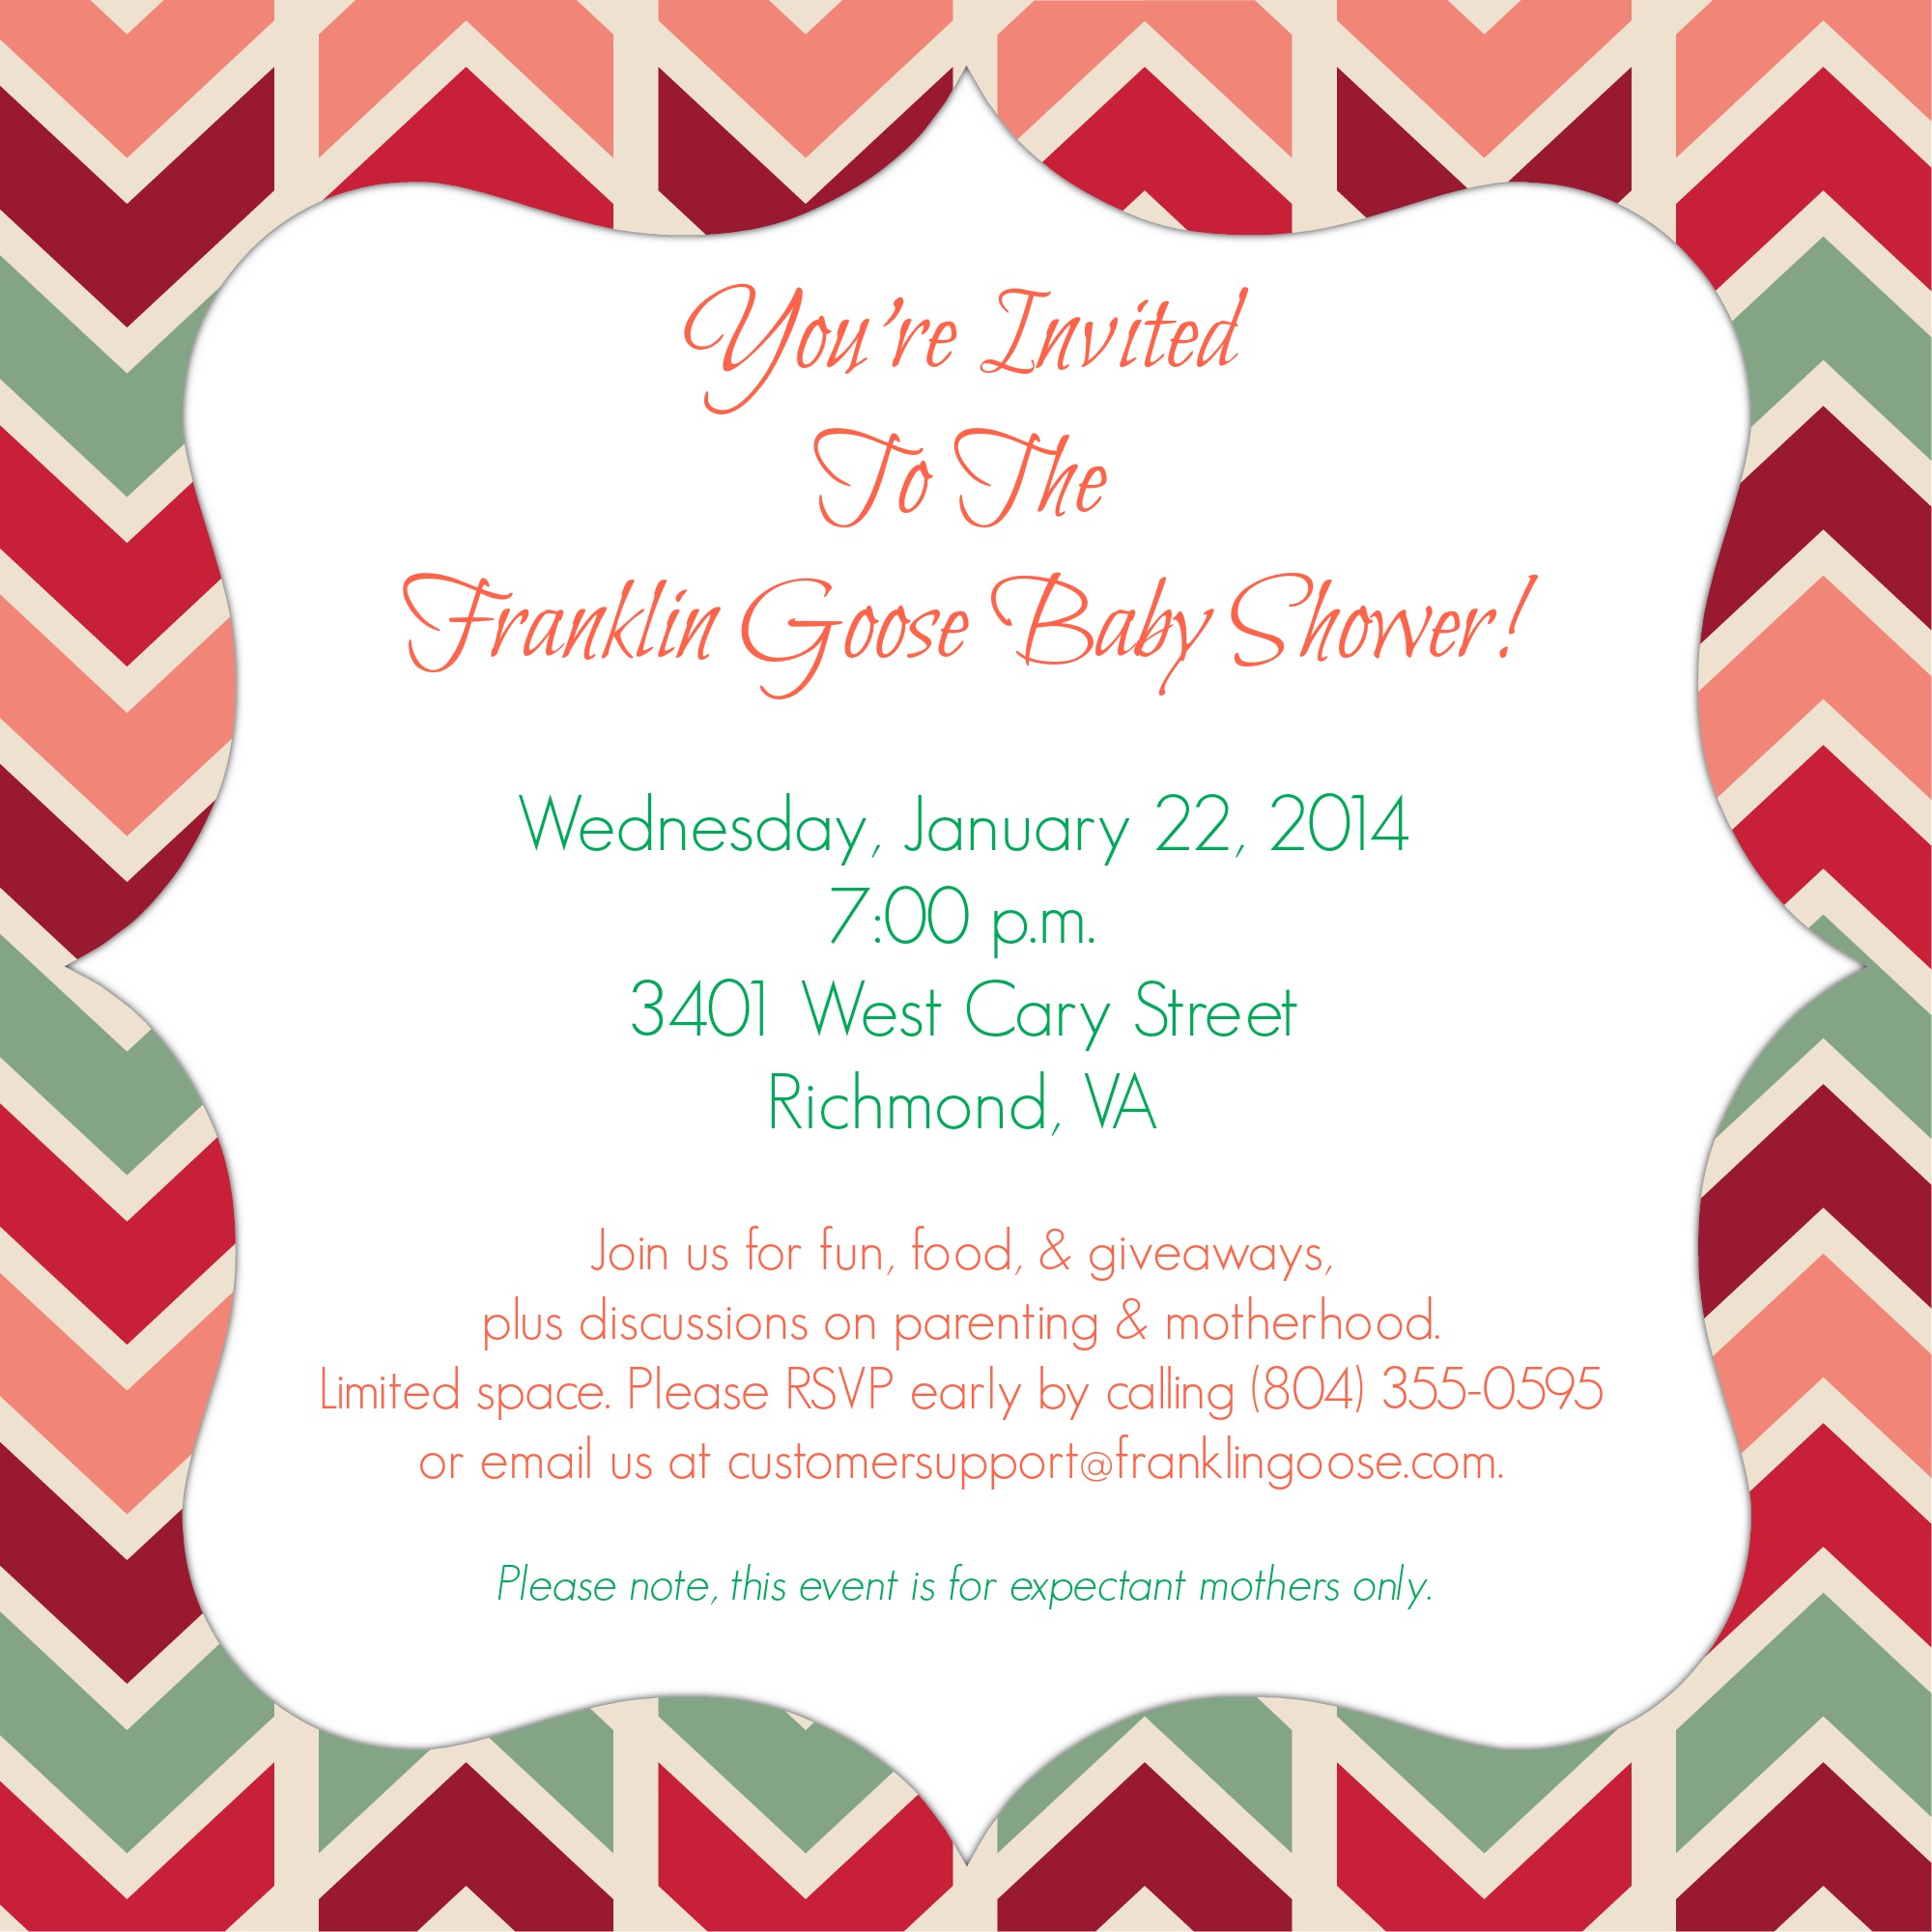 Youre invited to the franklin goose baby shower franklin goose baby shower invite 2 filmwisefo Choice Image